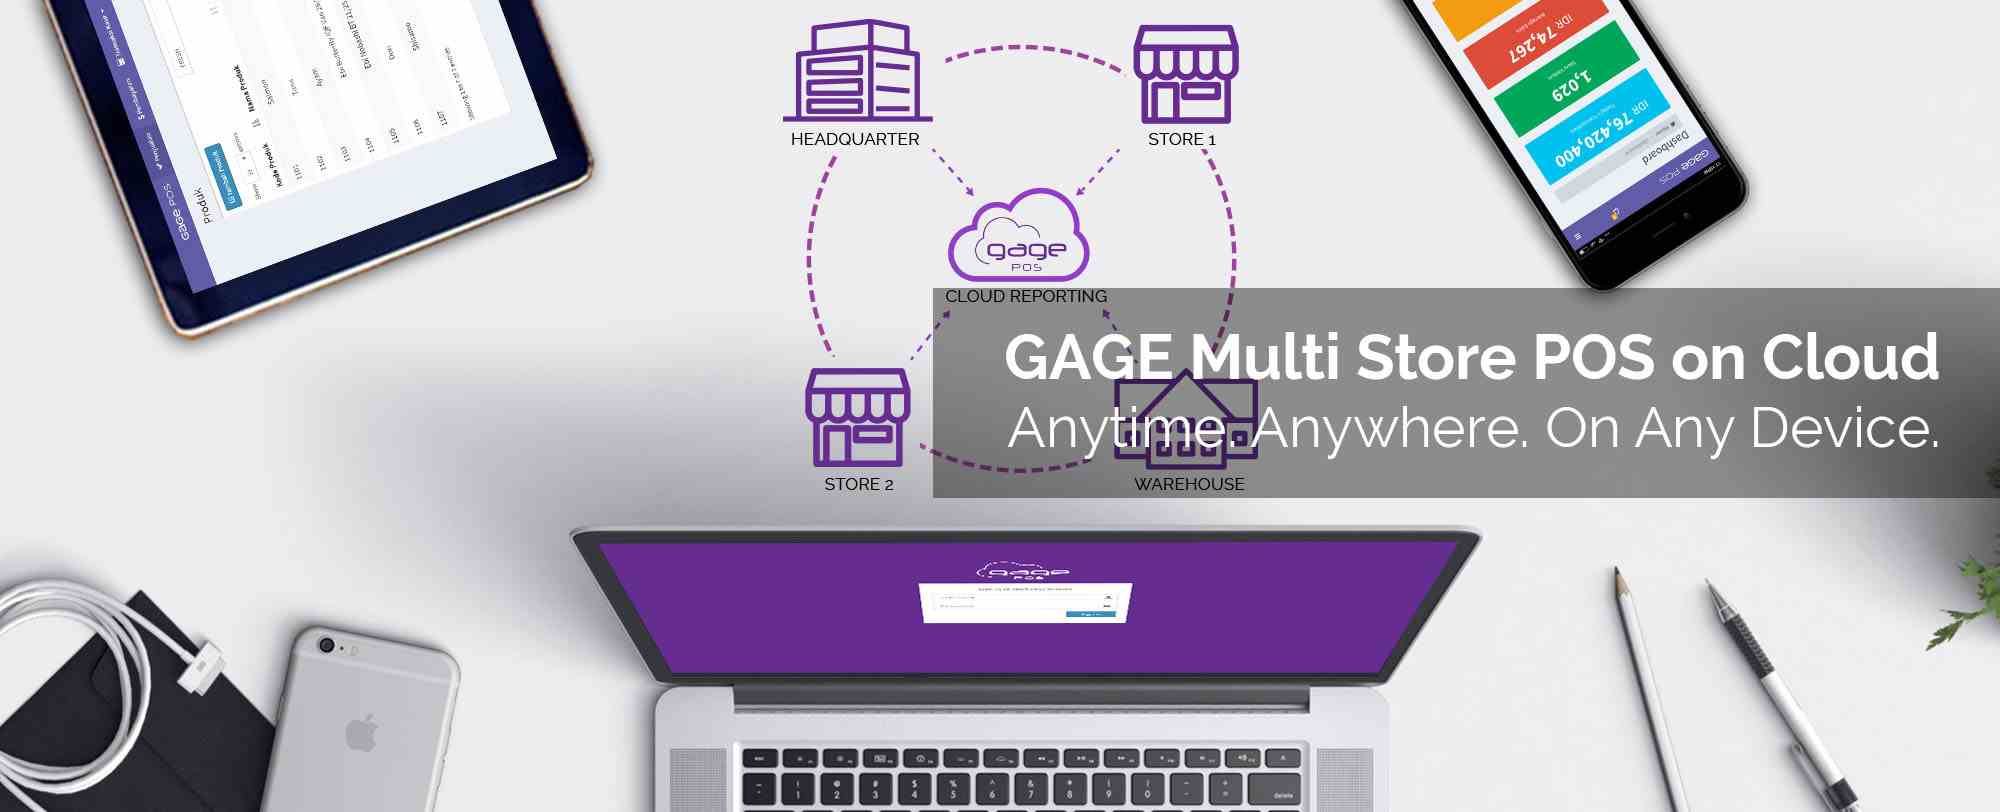 GAGE POS Multi Store POS on Cloud - Anytime, Anywhere, on any device.